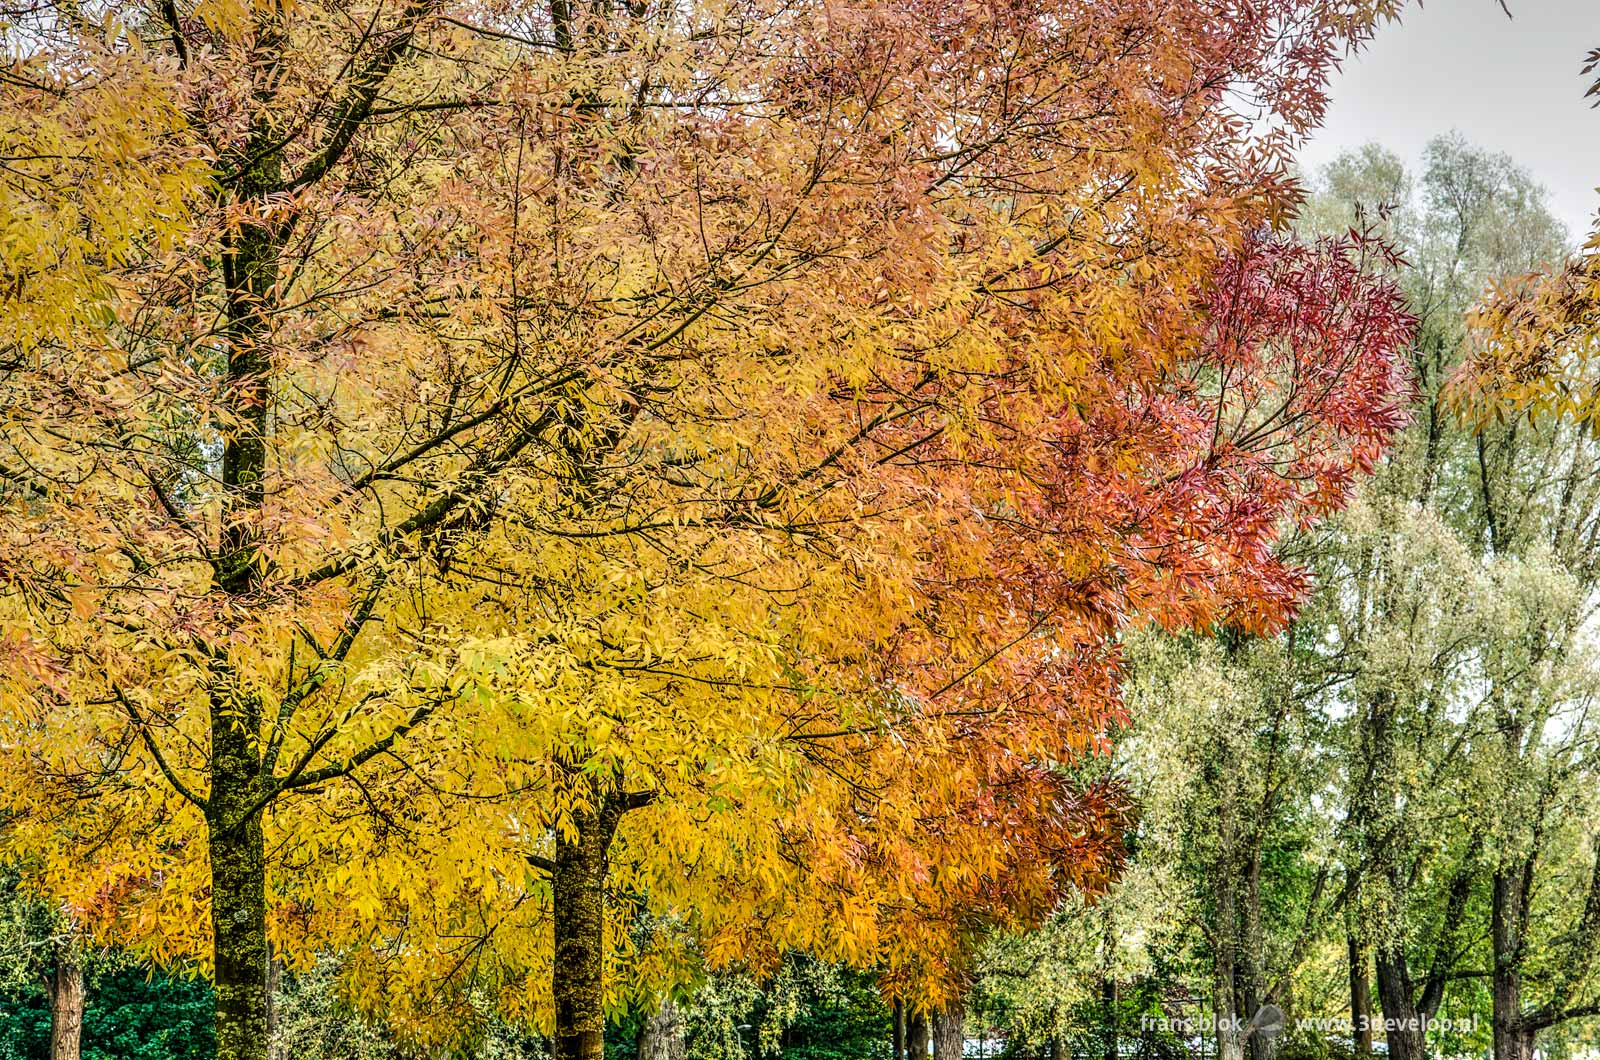 Autumn image with in the foreground twee yellow and red tree and on the background some predominantly still green trees